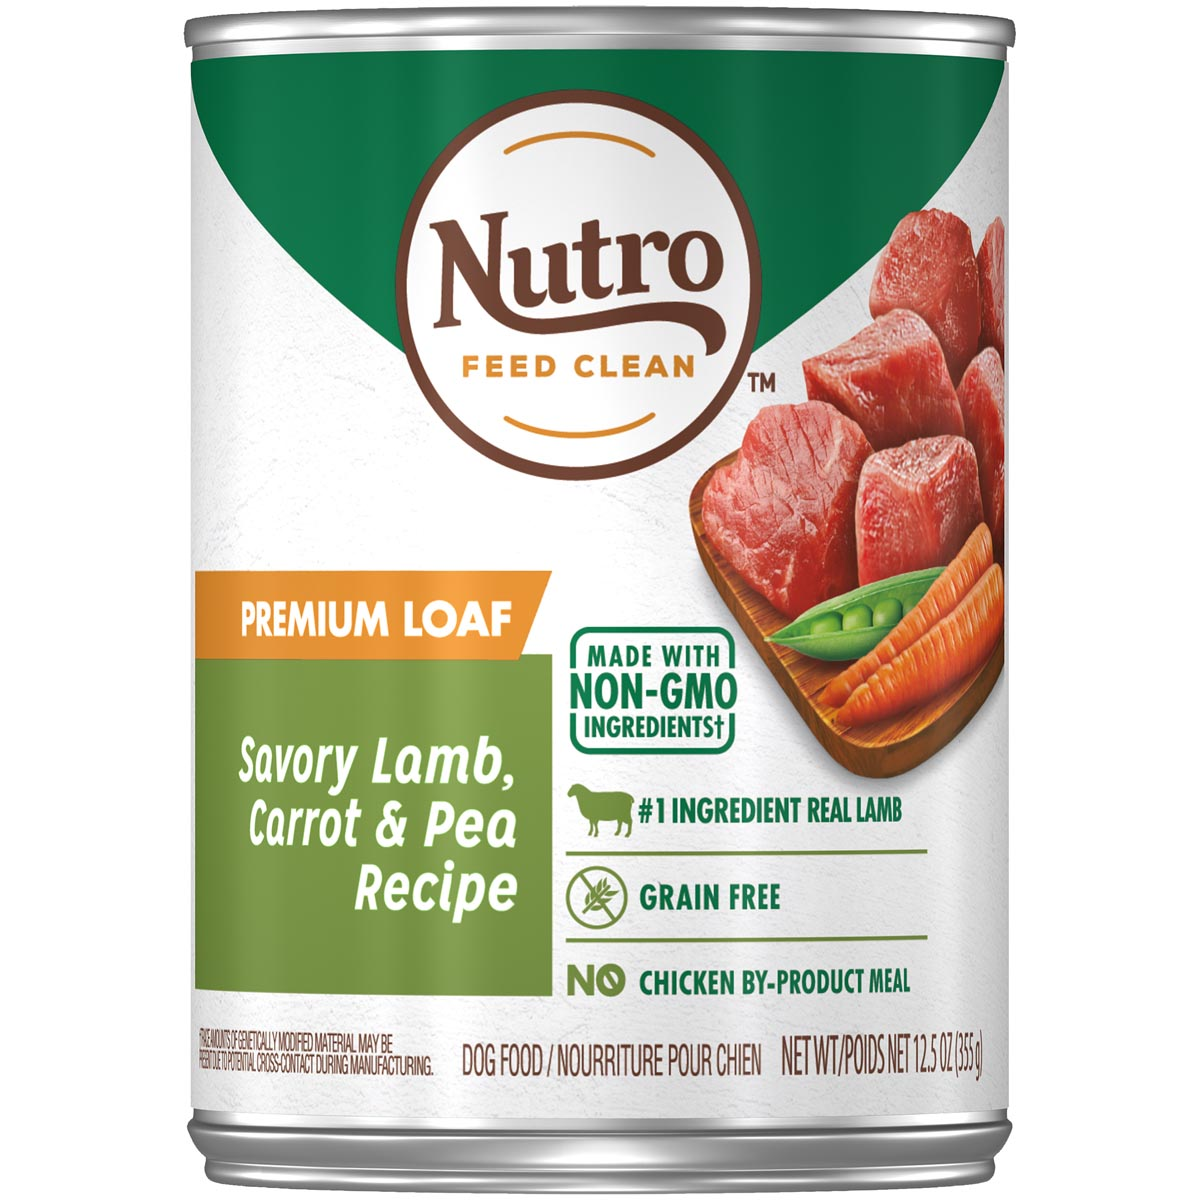 Nutro Feed Clean Premium Loaf Savory Lamb, Carrot & Pea Recipe Dog Food 12.5 oz. Can